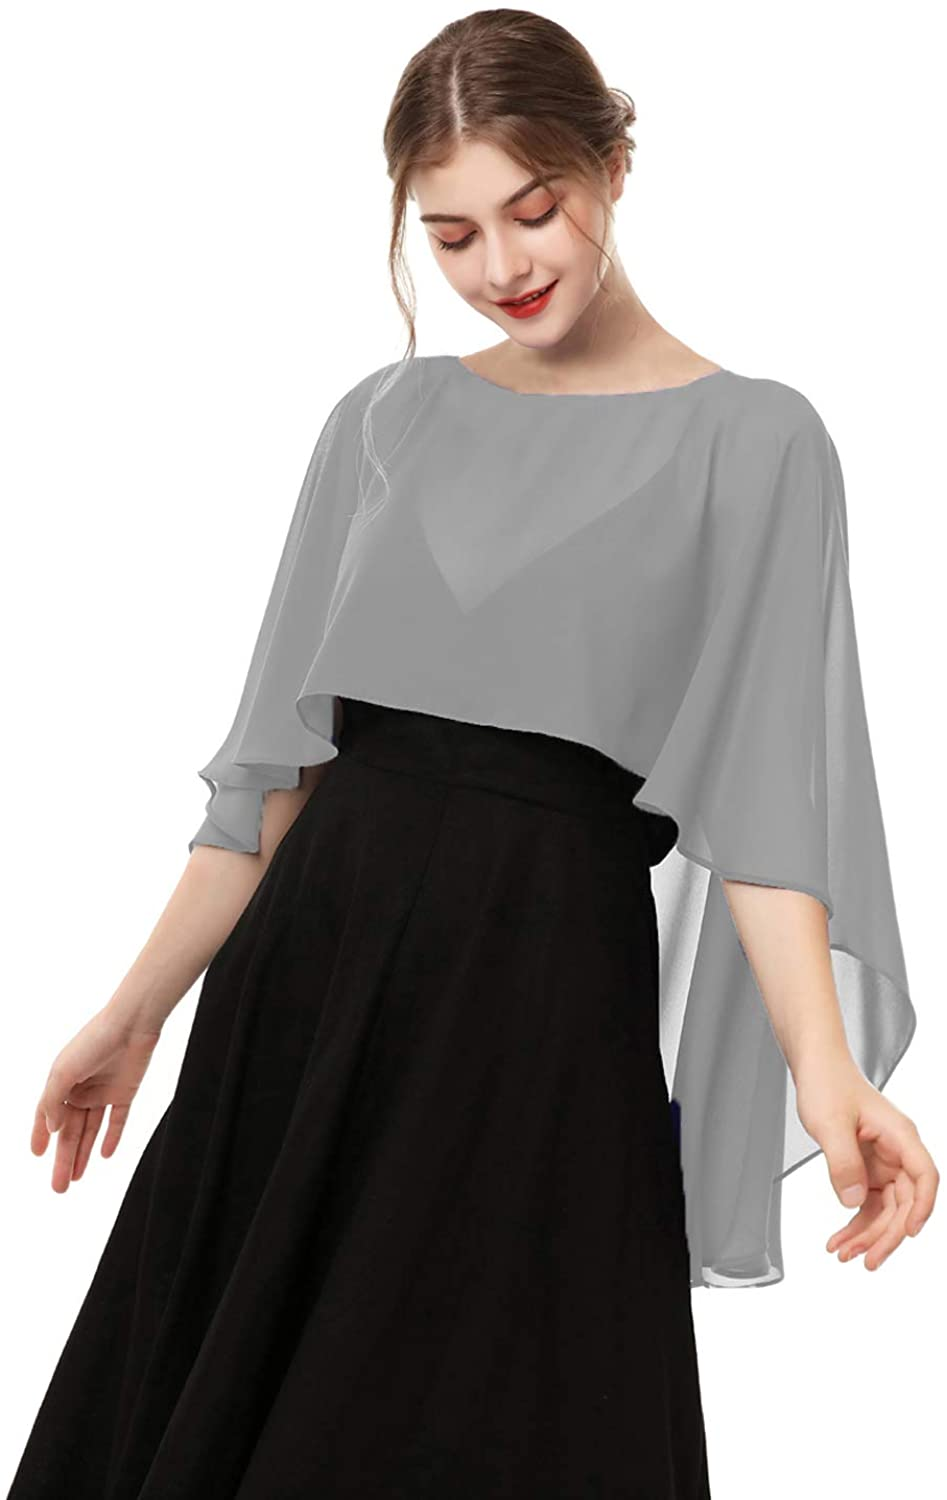 Wedding Capes Capelets for women Chiffon Cape Shawls and Wraps for Evening Dress